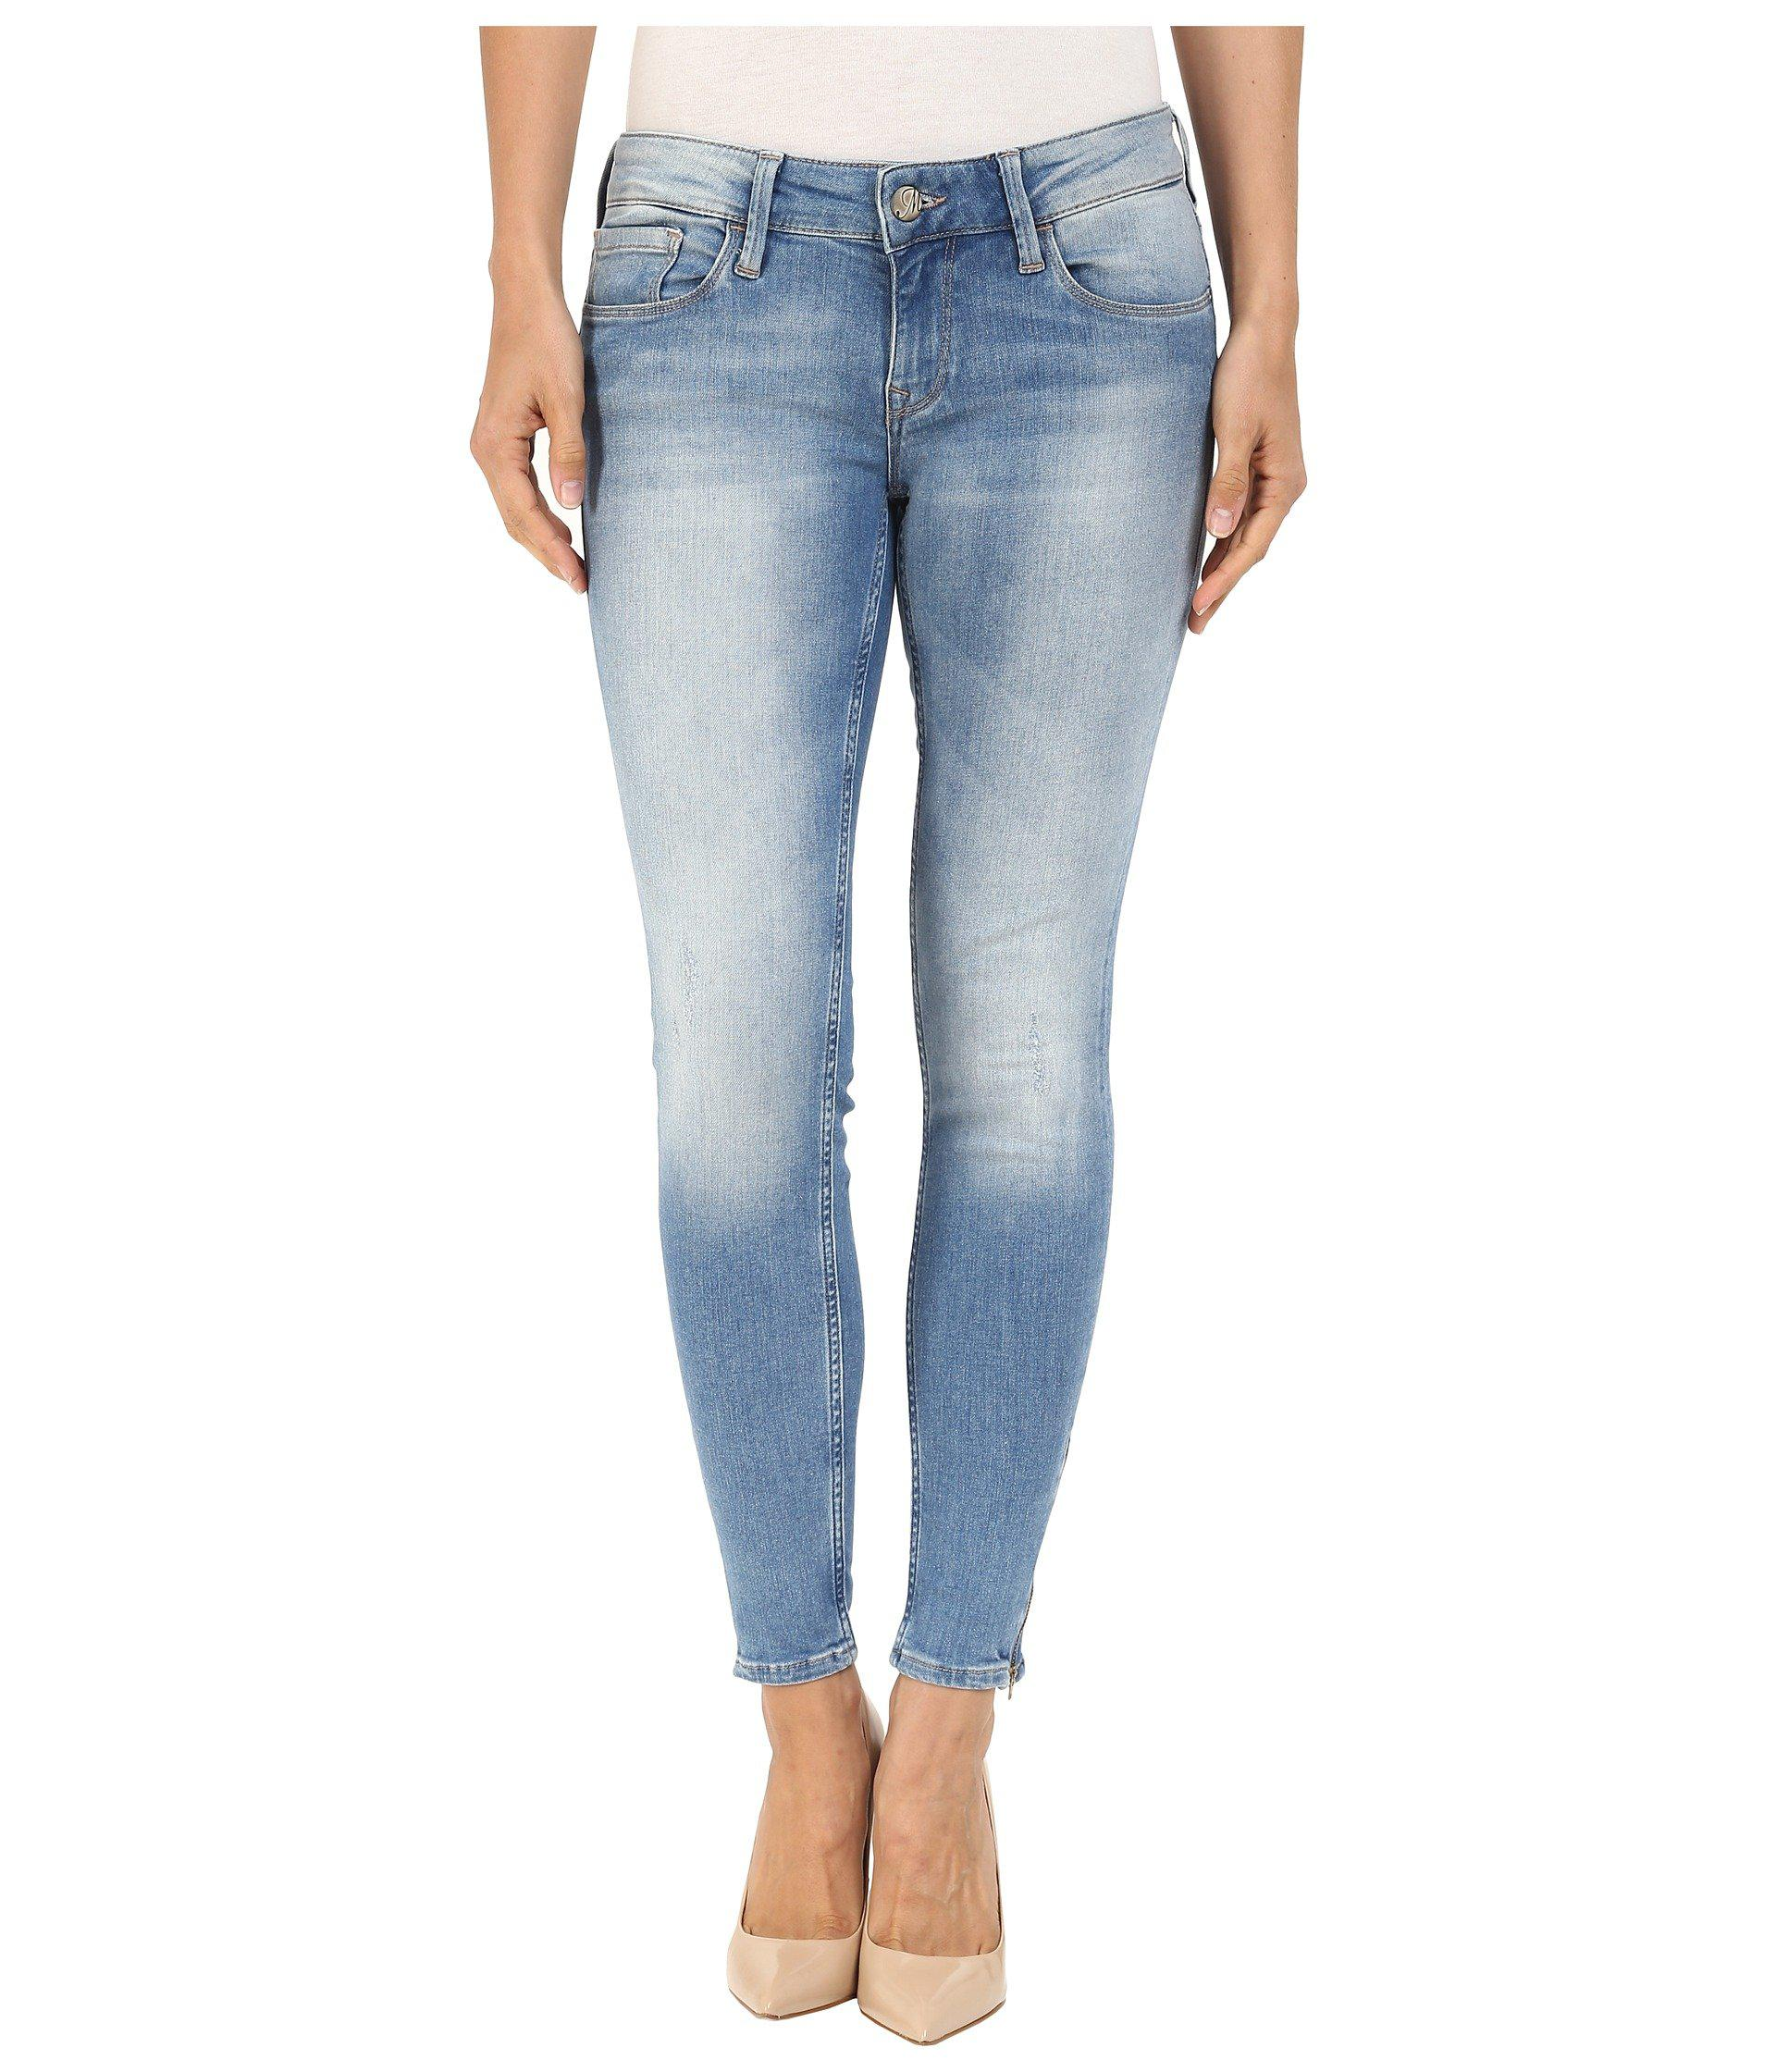 Cheap Sale Shop For Looking For For Sale Glamorous Skinny jeans with zip ankle detail Buy Cheap 2018 Unisex pmcs6DXFZ